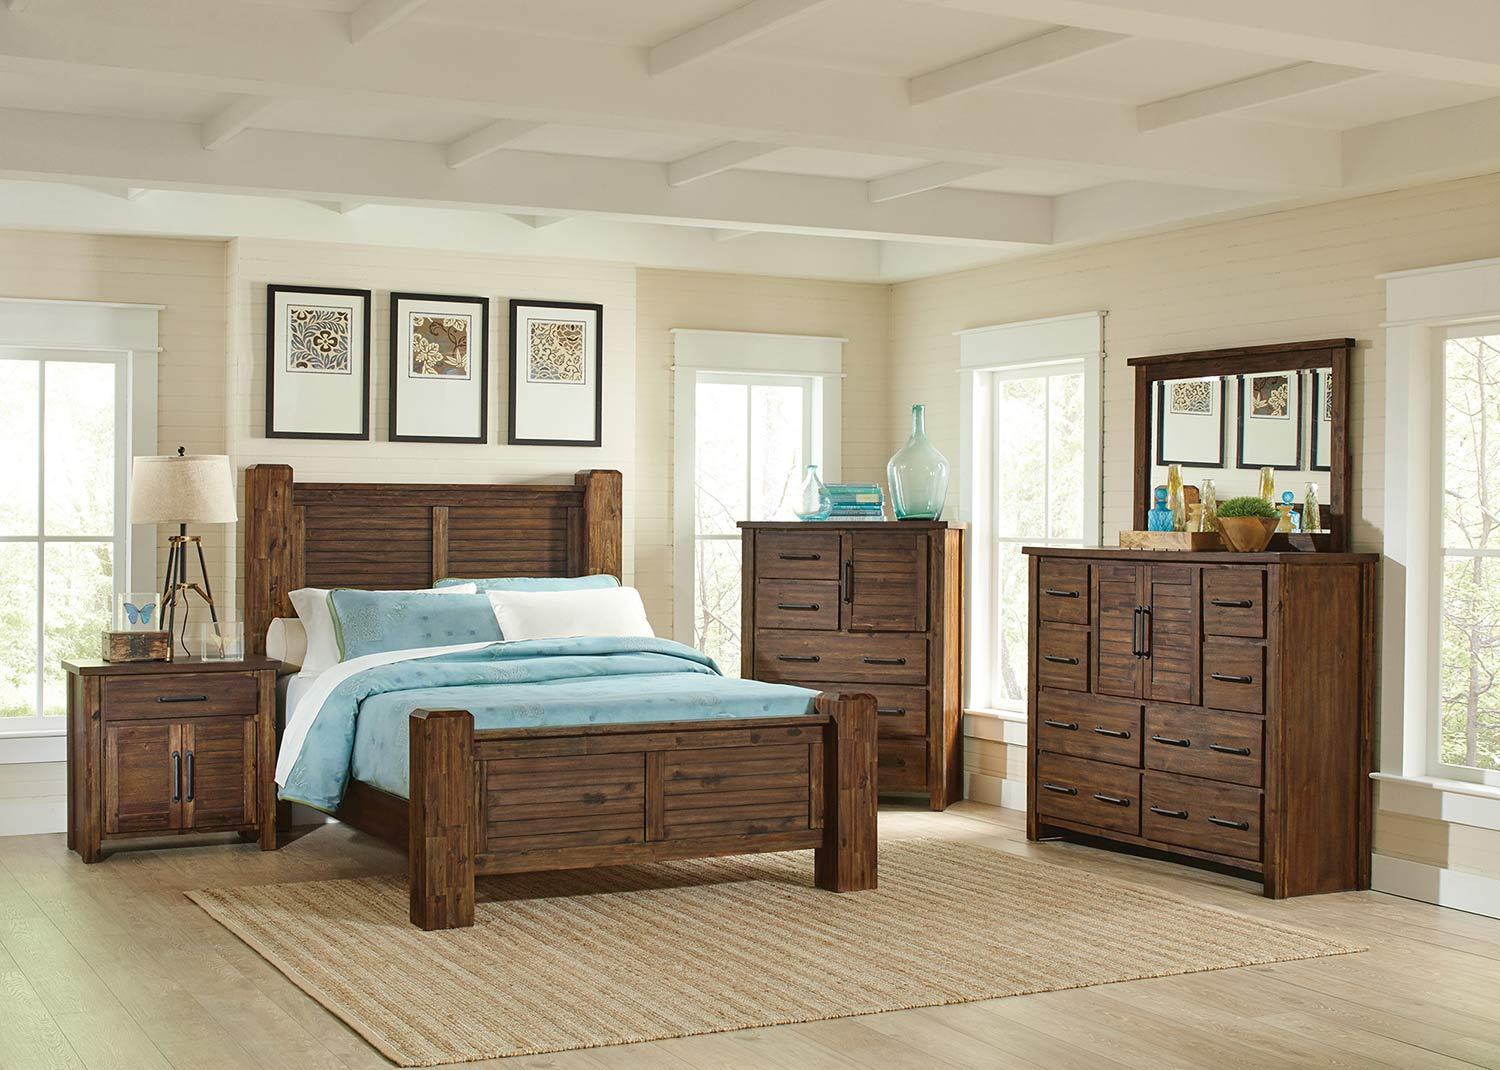 Coaster Sutter Creek Bedroom Set - Vintage Bourbon